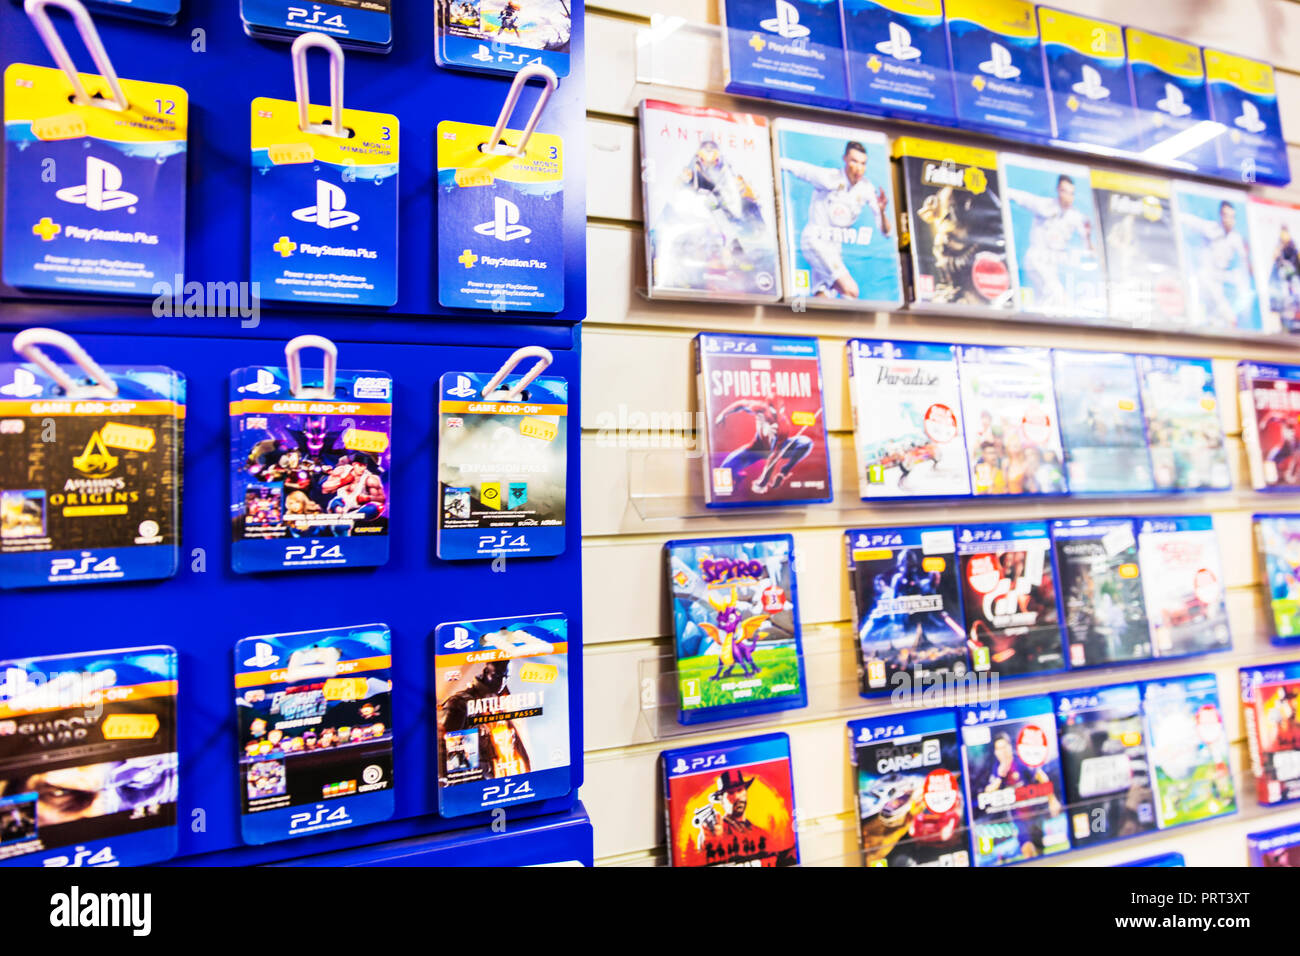 Sony Playstation Spiele, Sony Playstation Spiel add ons, Sony PS4-Games, Sony PS4, PS4 Spiel, Sony Playstation Plus, PS4 Shop, Playstation, game Stockbild